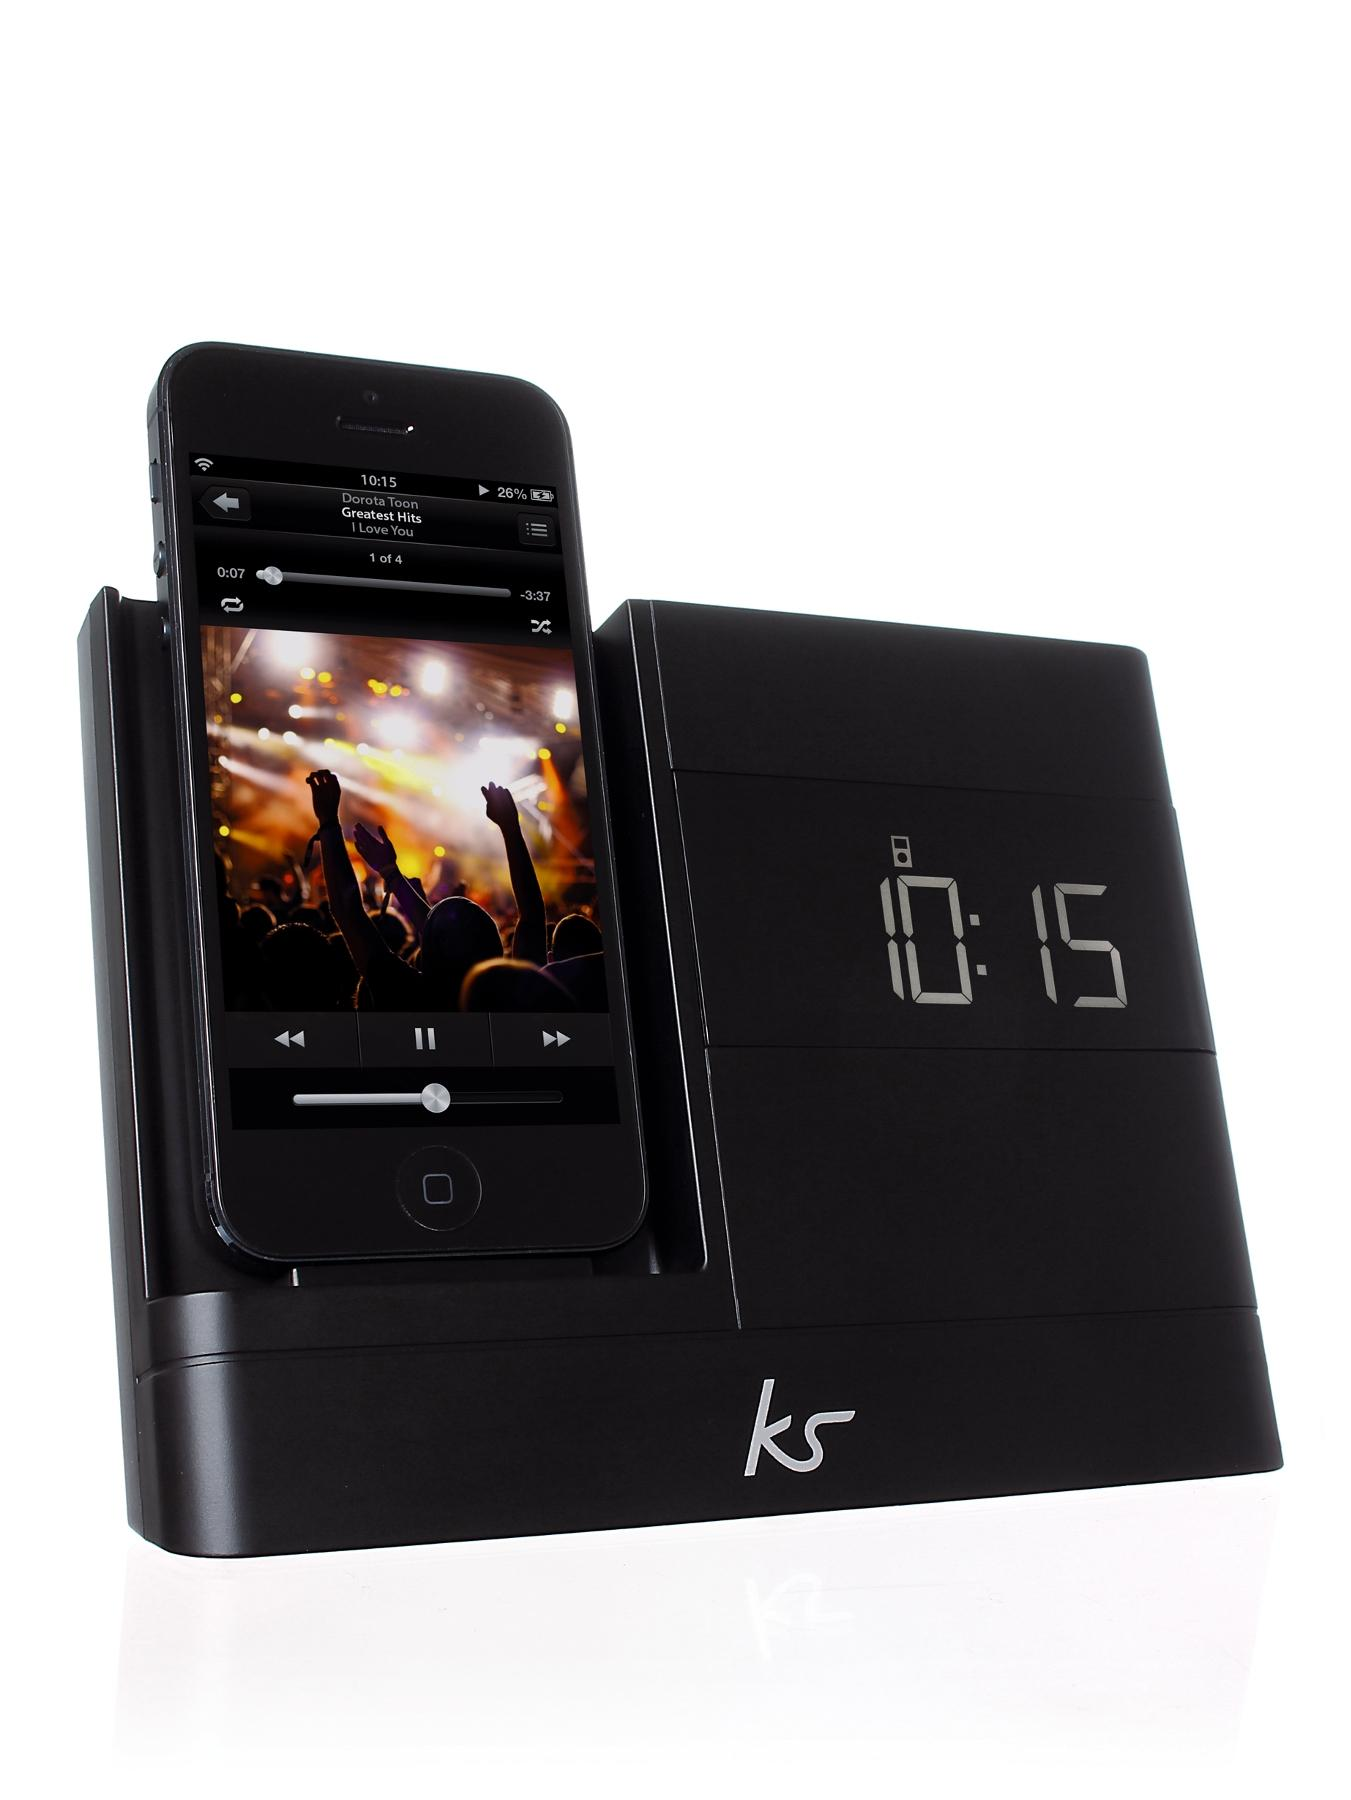 X-Dock 2 8 pin Lightning Connector Clock Radio Dock for iPhone 5 - Black at Littlewoods